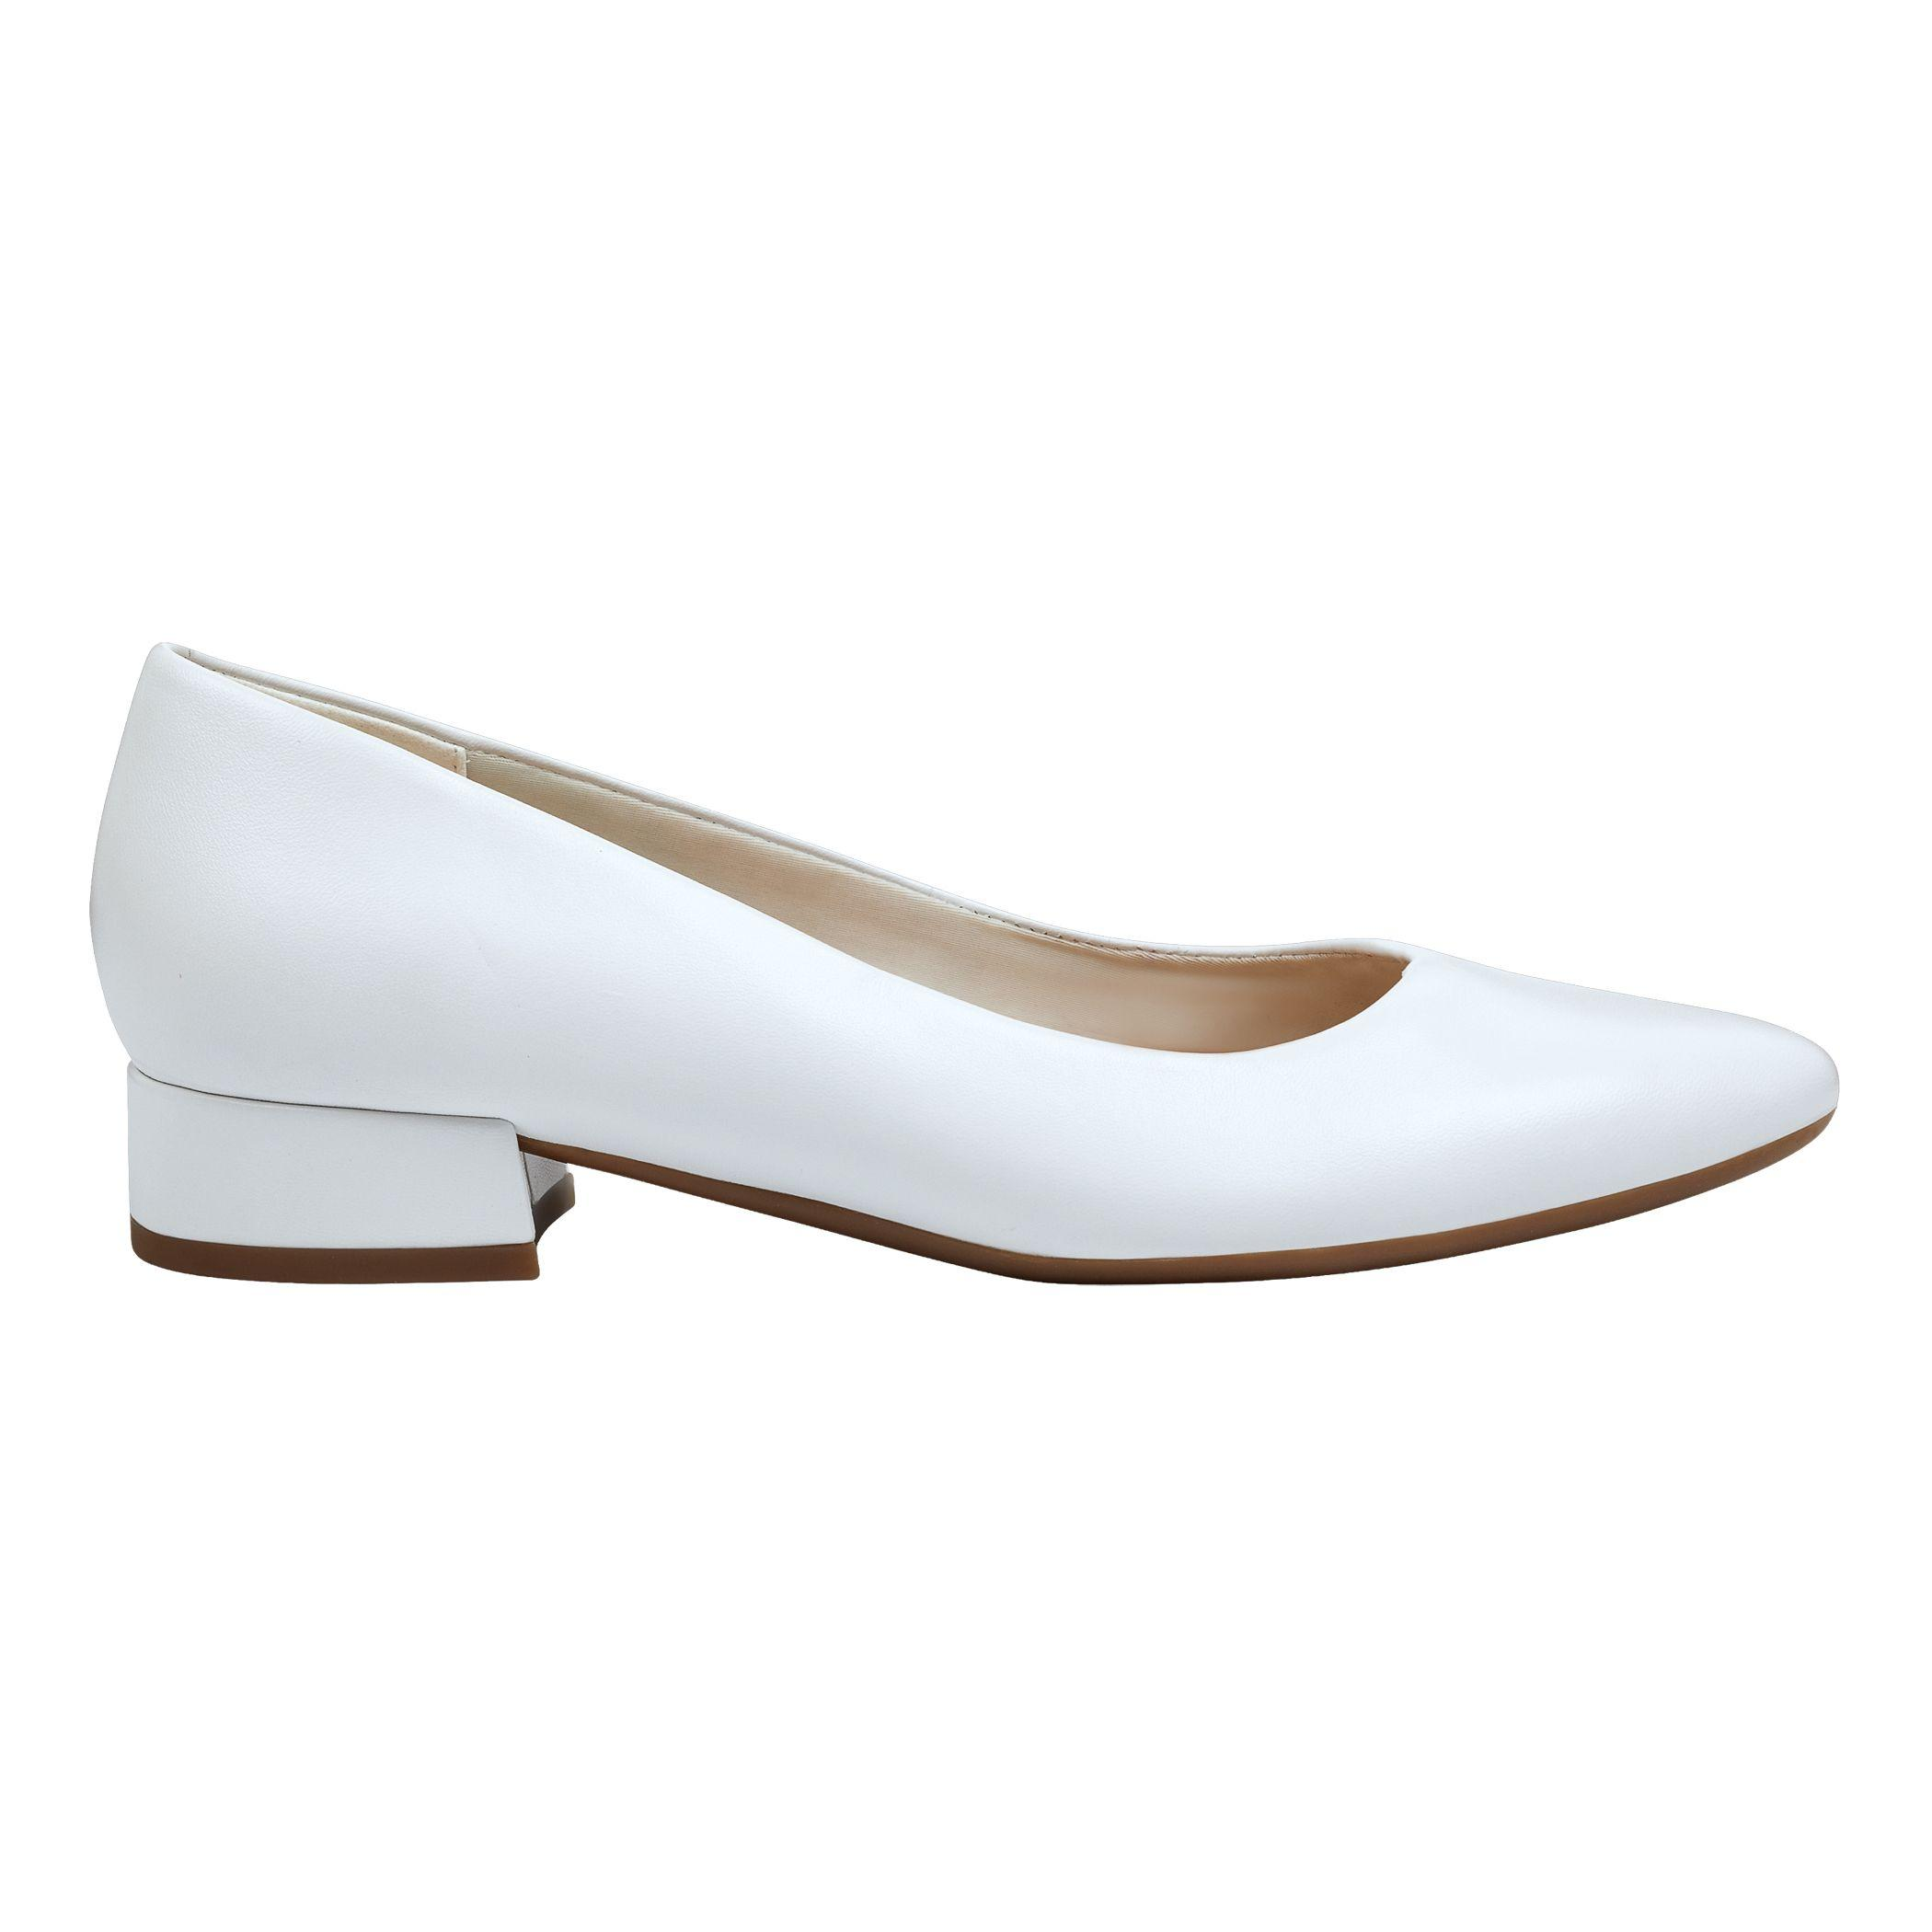 7e2b2cb6bde Lyst - Easy Spirit Caldise Low Heel Dress Shoes in White - Save 45%